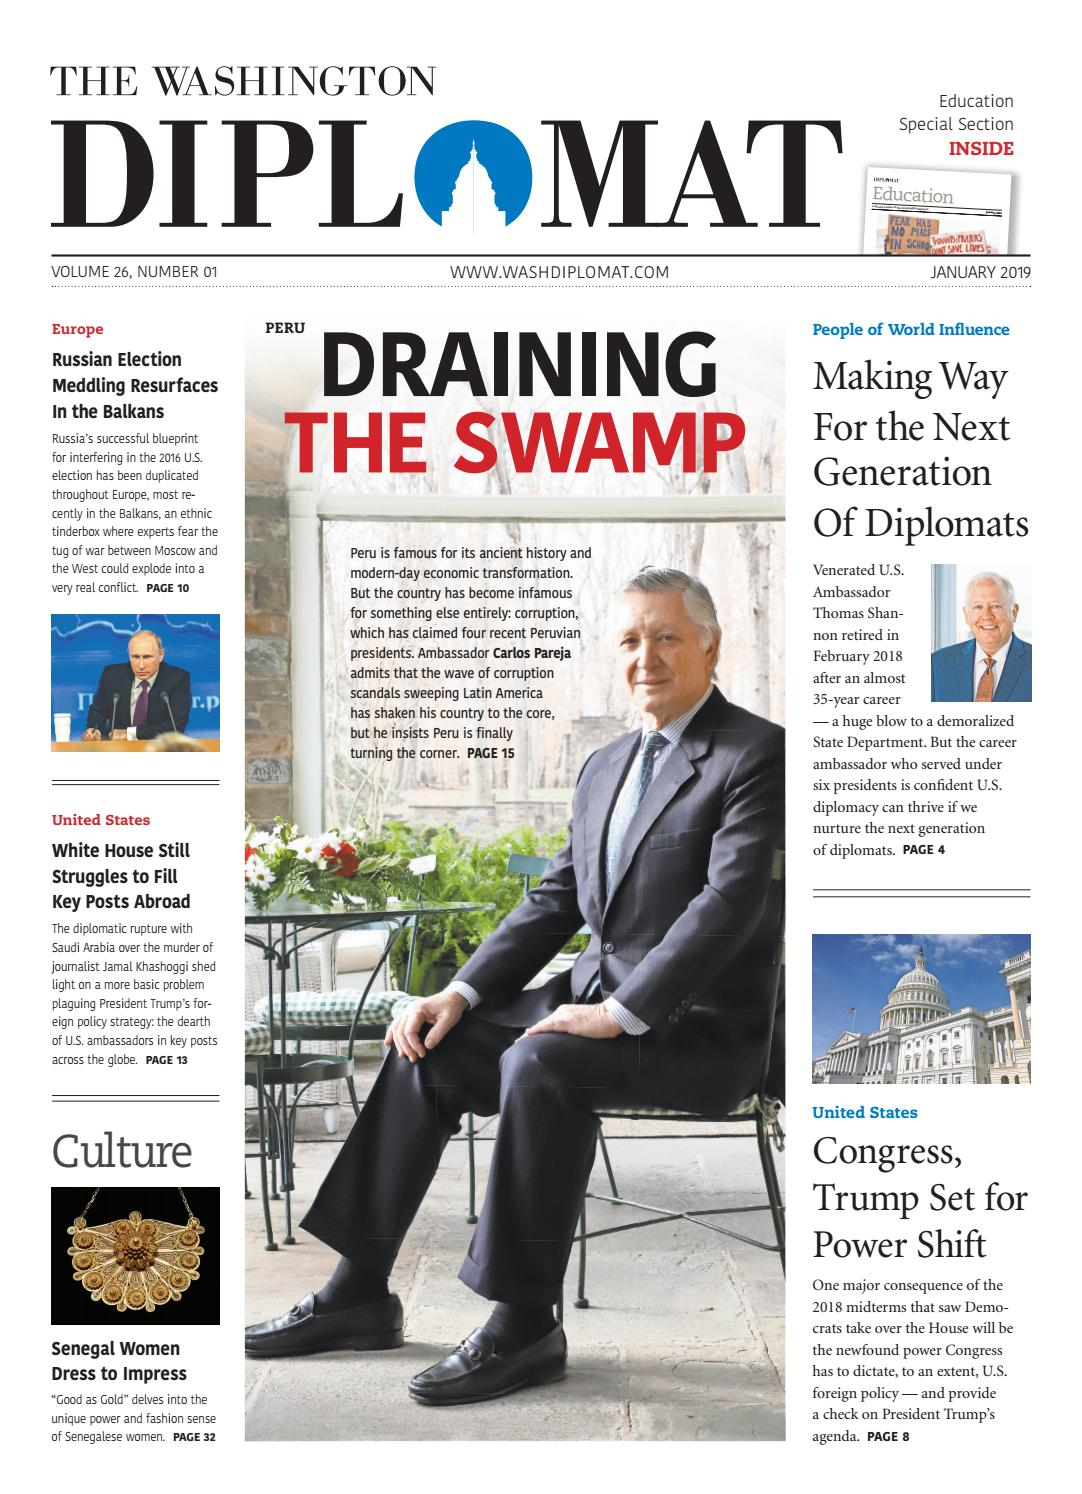 ee514311d7f3 The Washington Diplomat - January 2019 by The Washington Diplomat - issuu